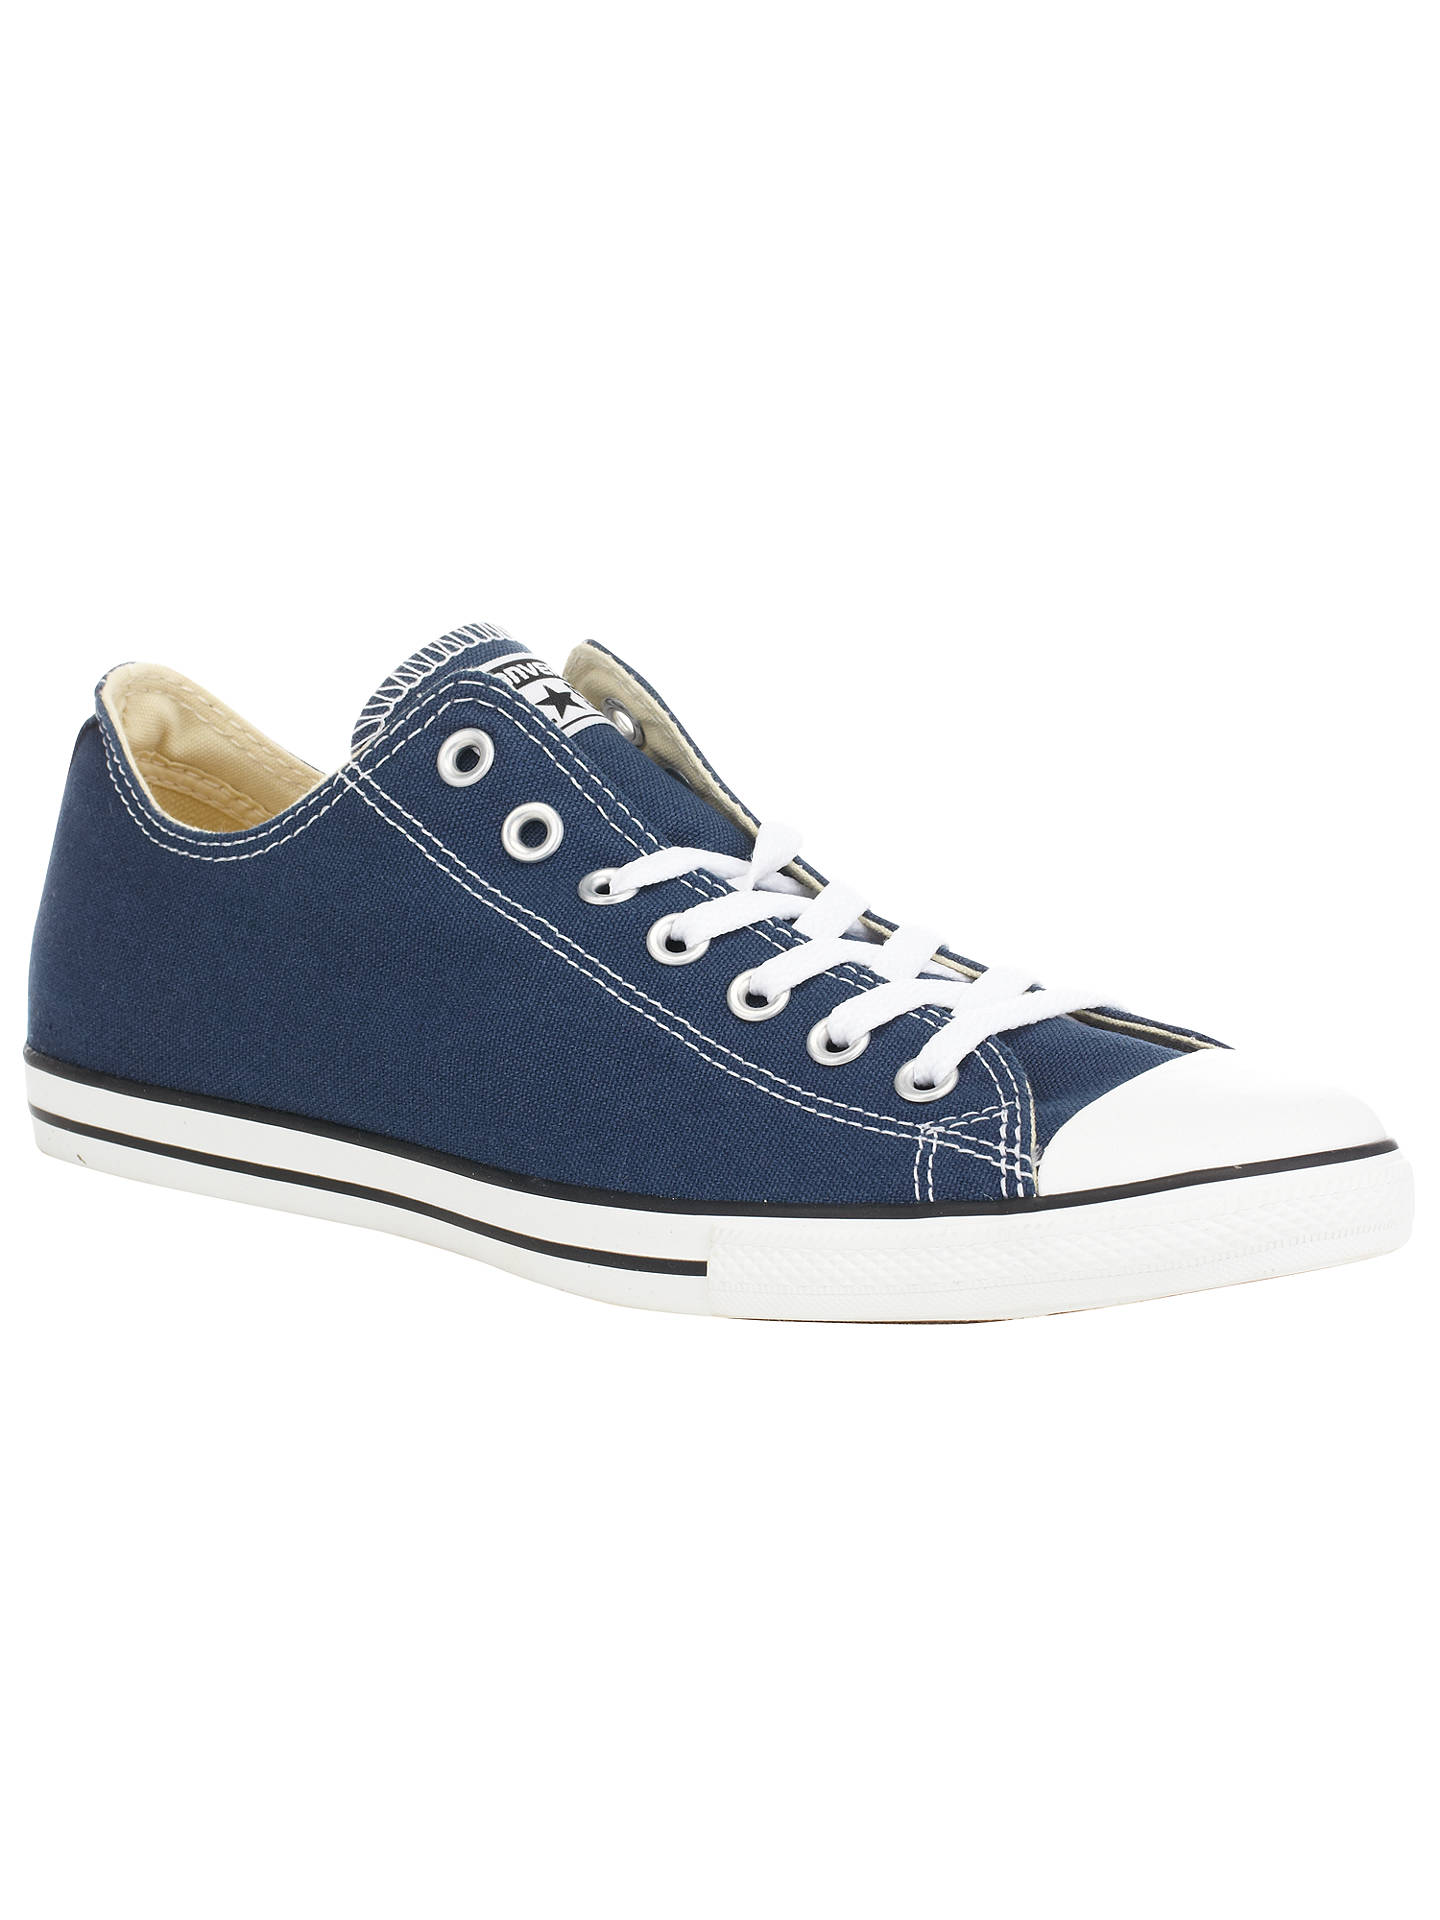 2c563f188752 Converse Lean All Star Ox Trainers at John Lewis   Partners